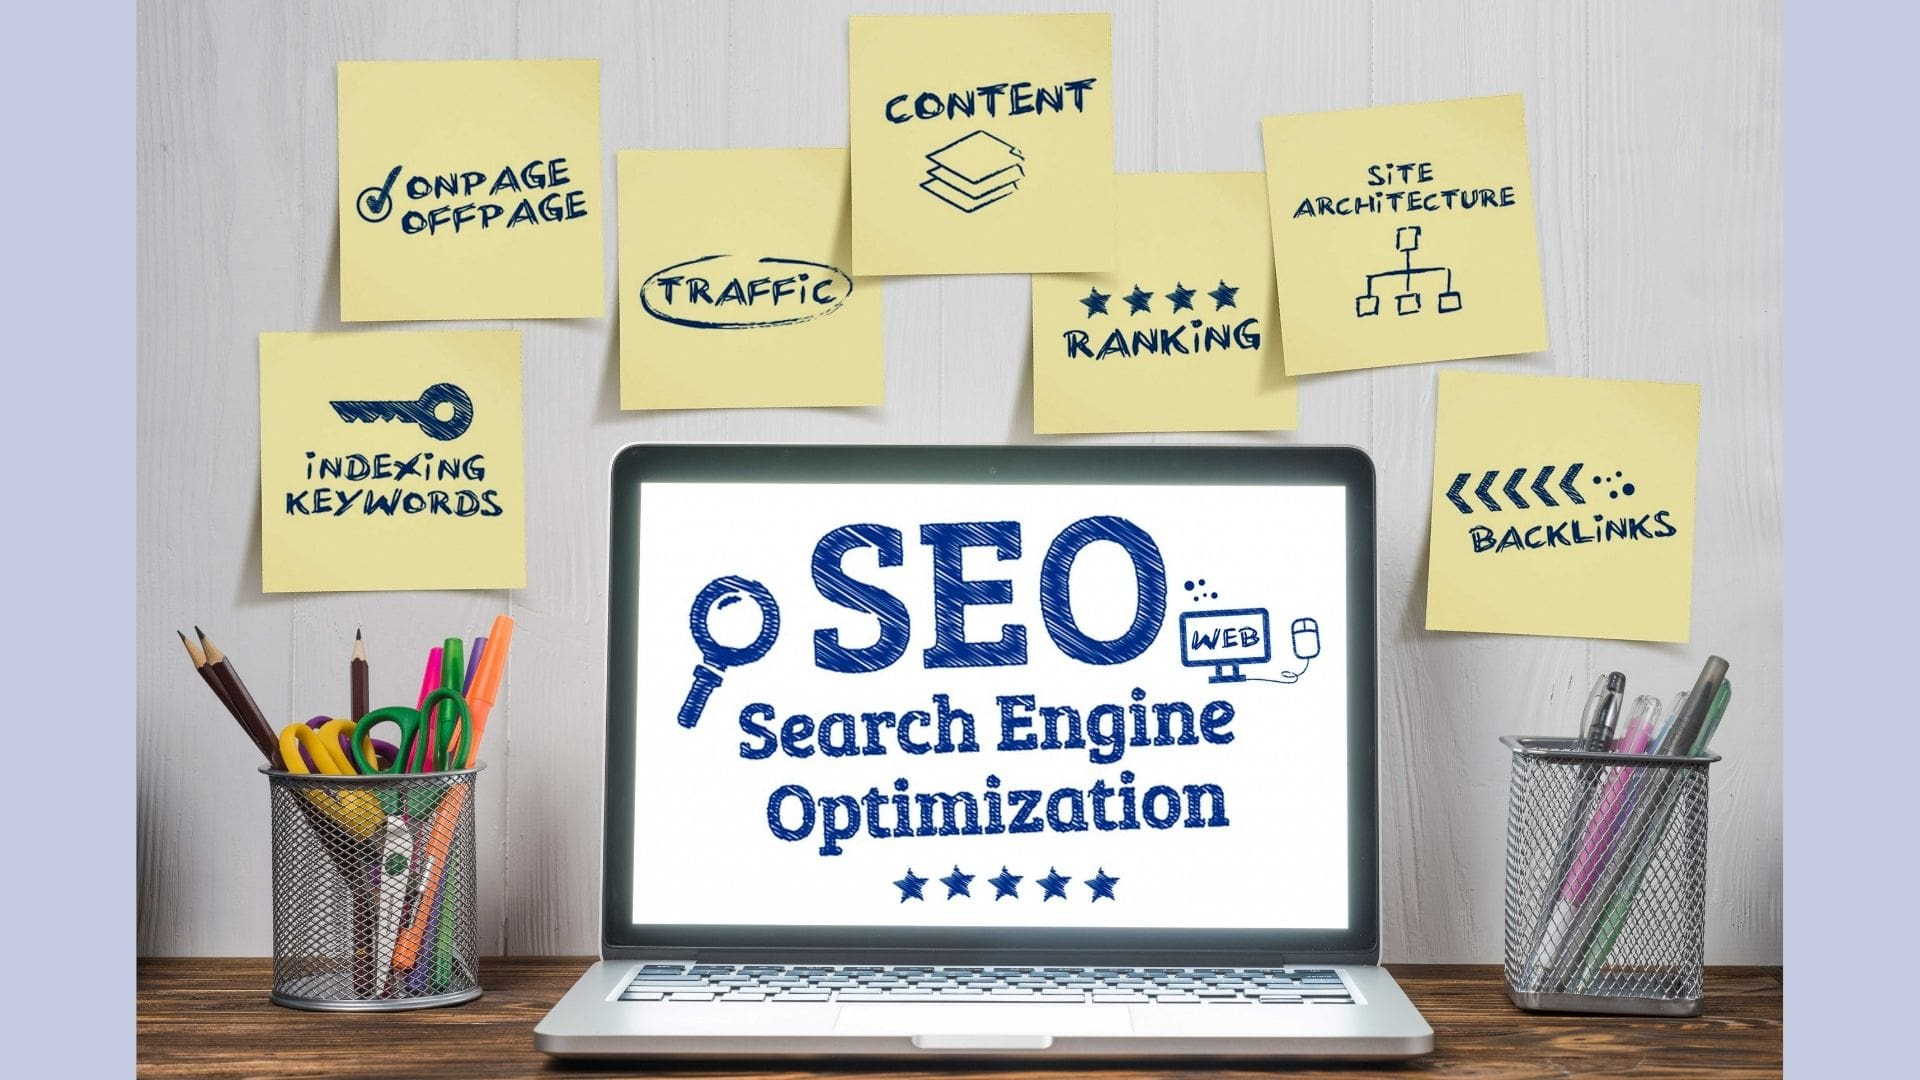 Content Marketing White Label SEO Strategies For Higher Rankings